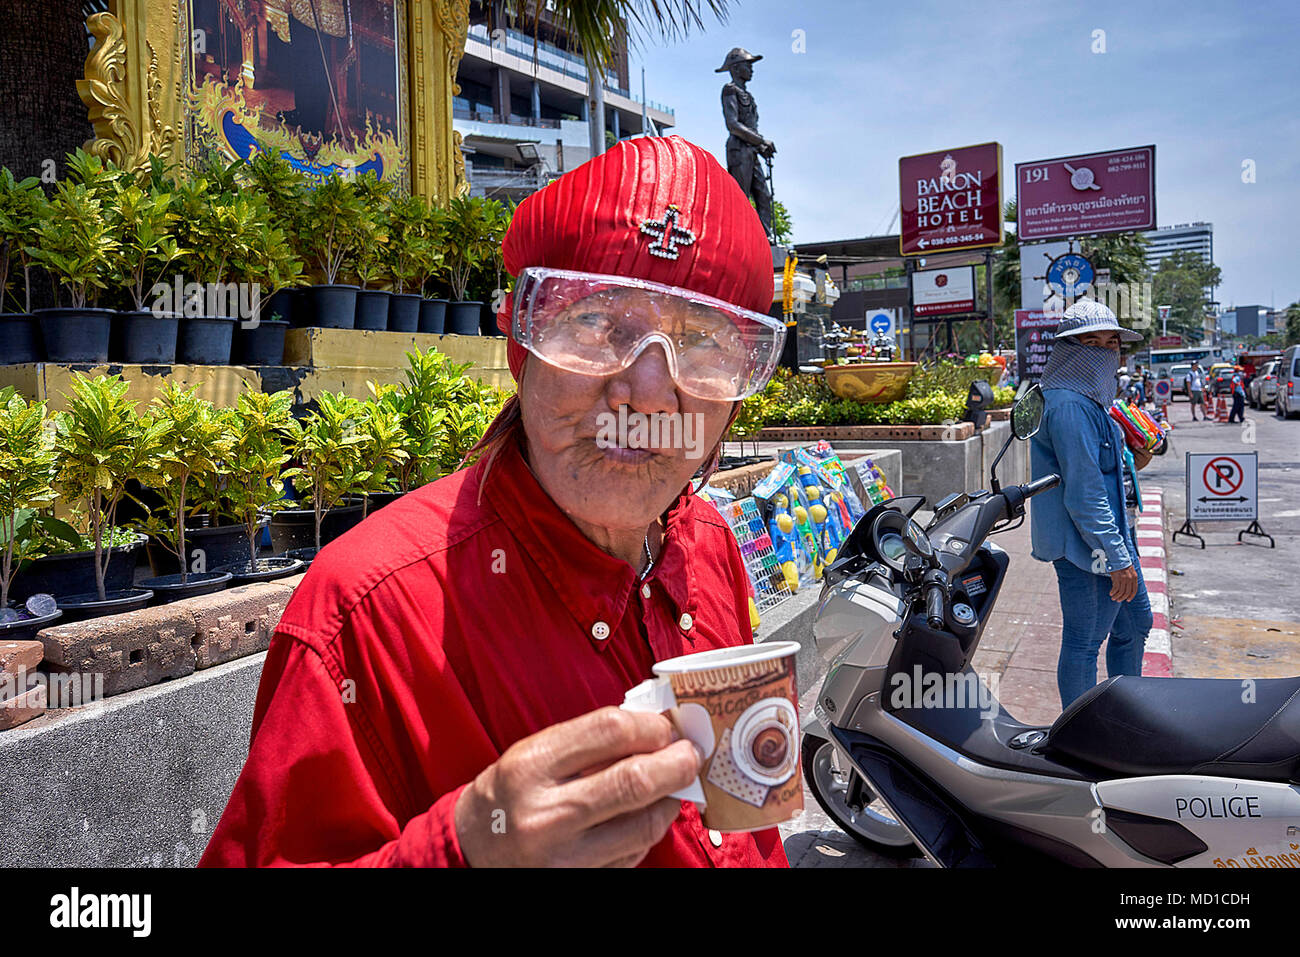 Songkran reveller. Thailand man wearing goggles and unusual clothing at the Thai water festival event. - Stock Image